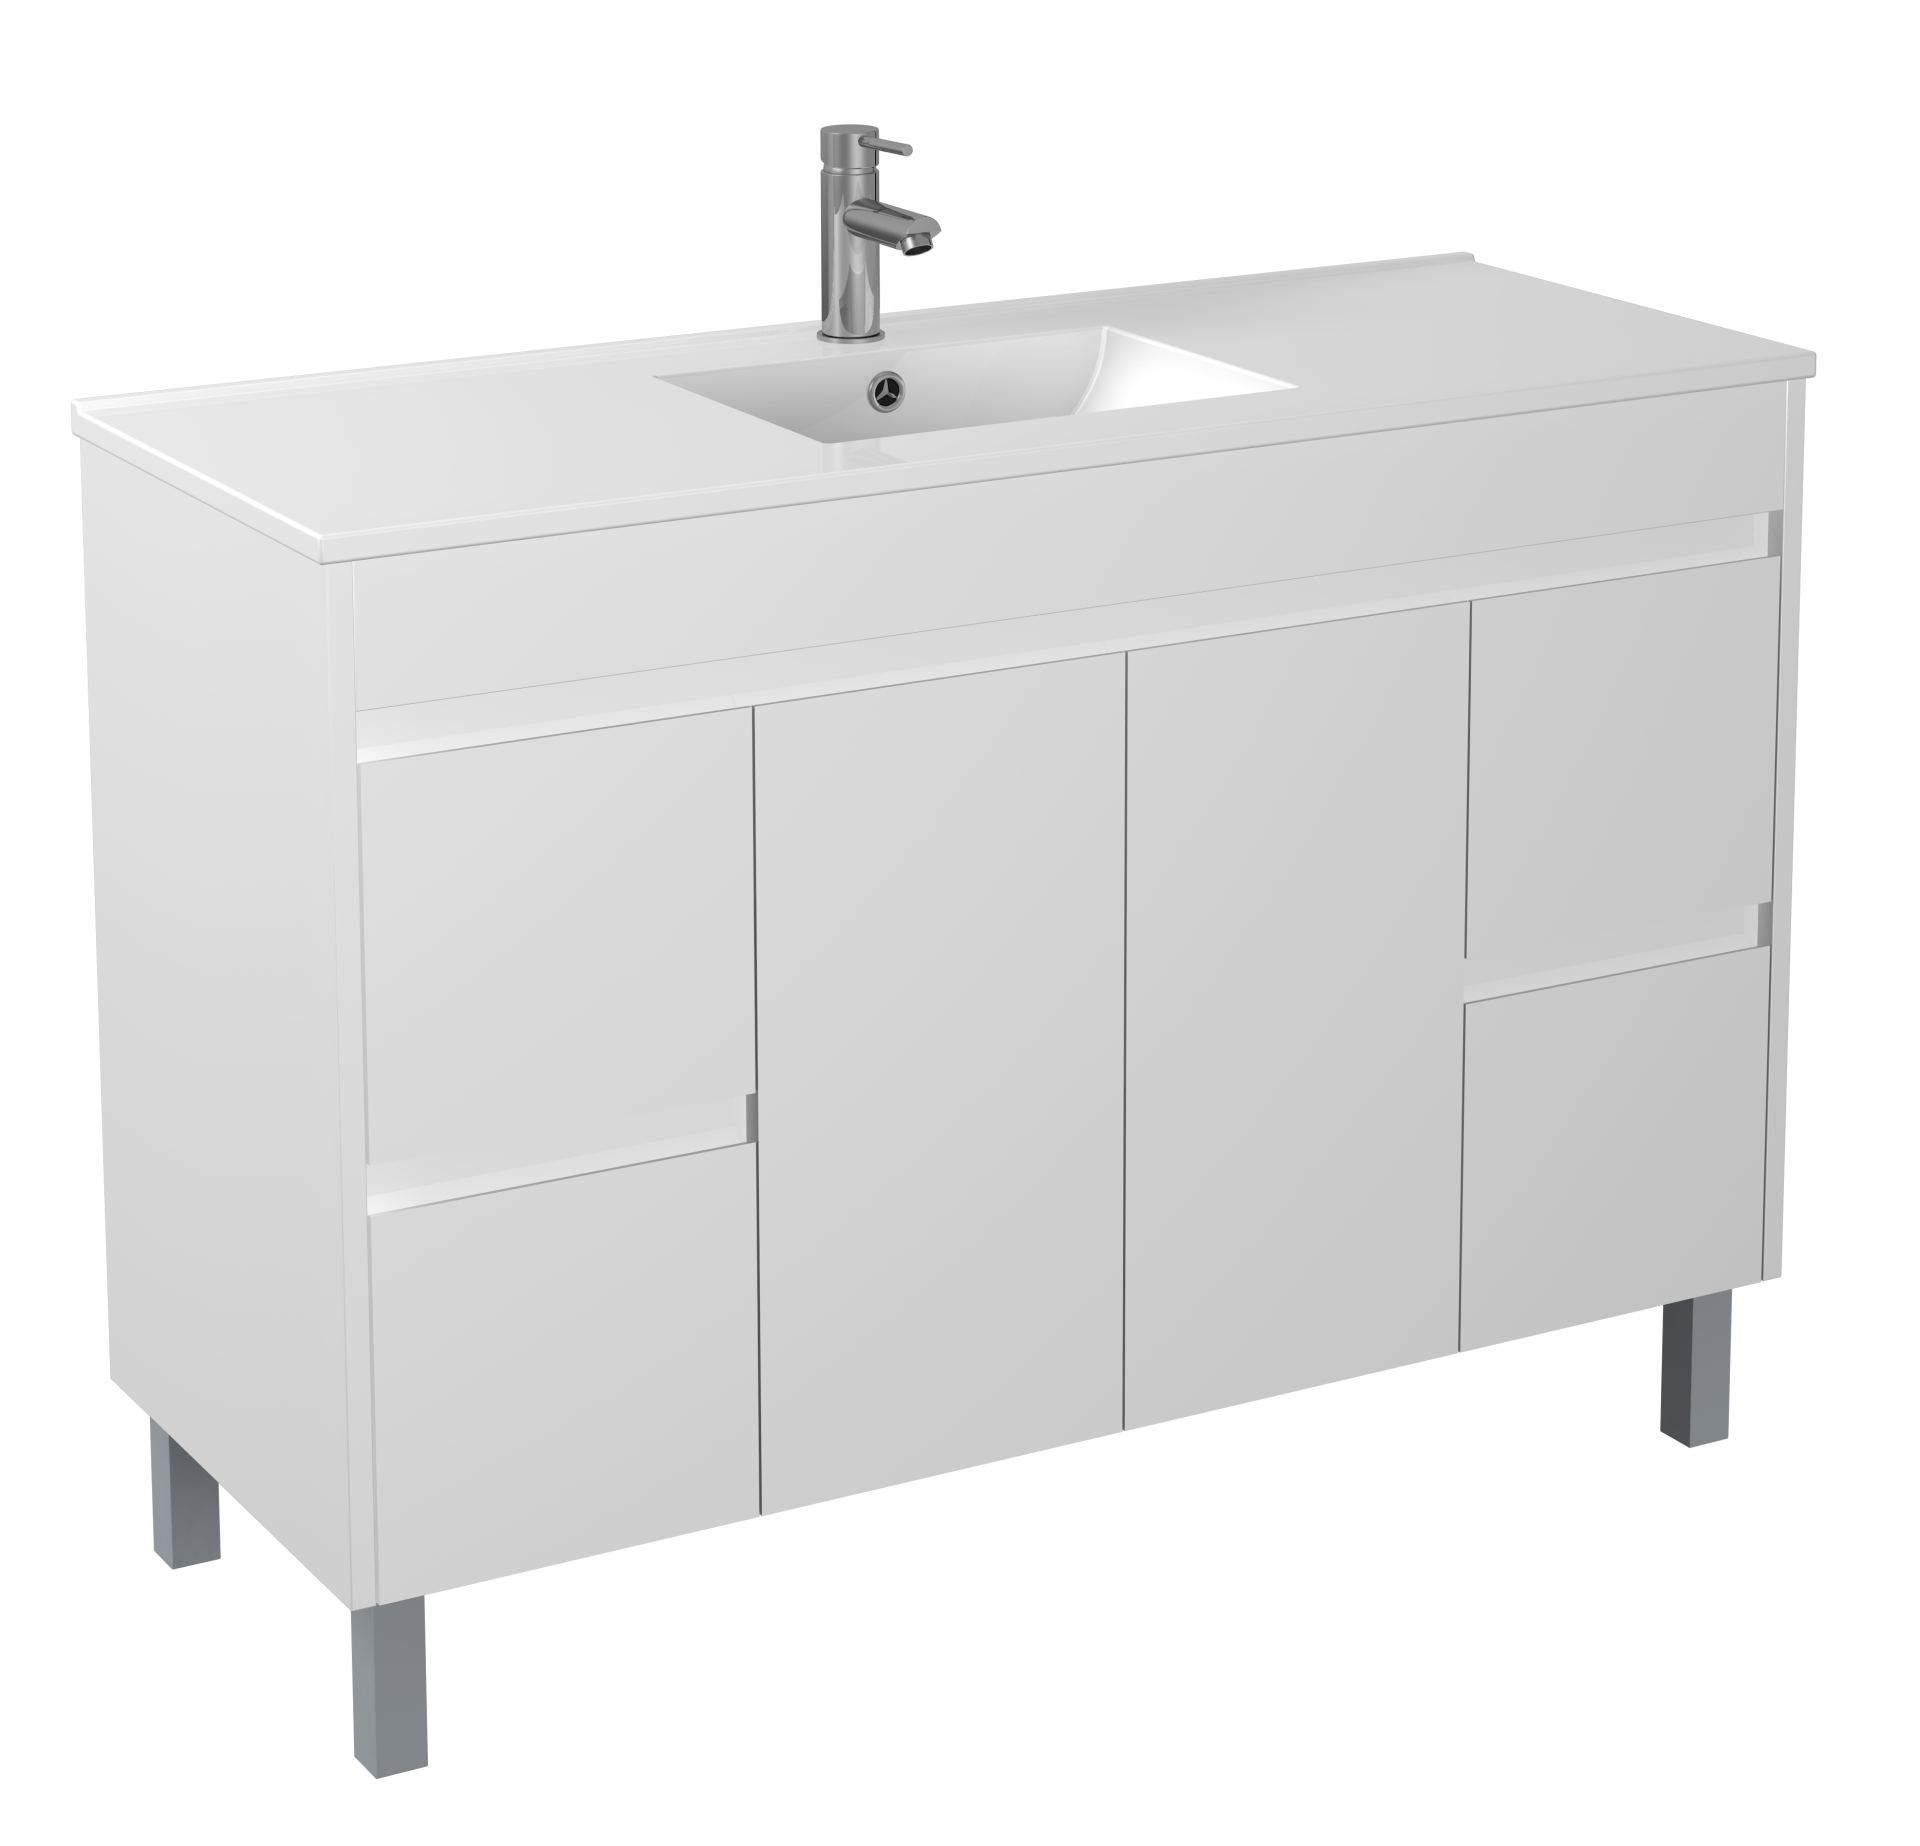 1200mm PVC Waterproof Vanity on Legs